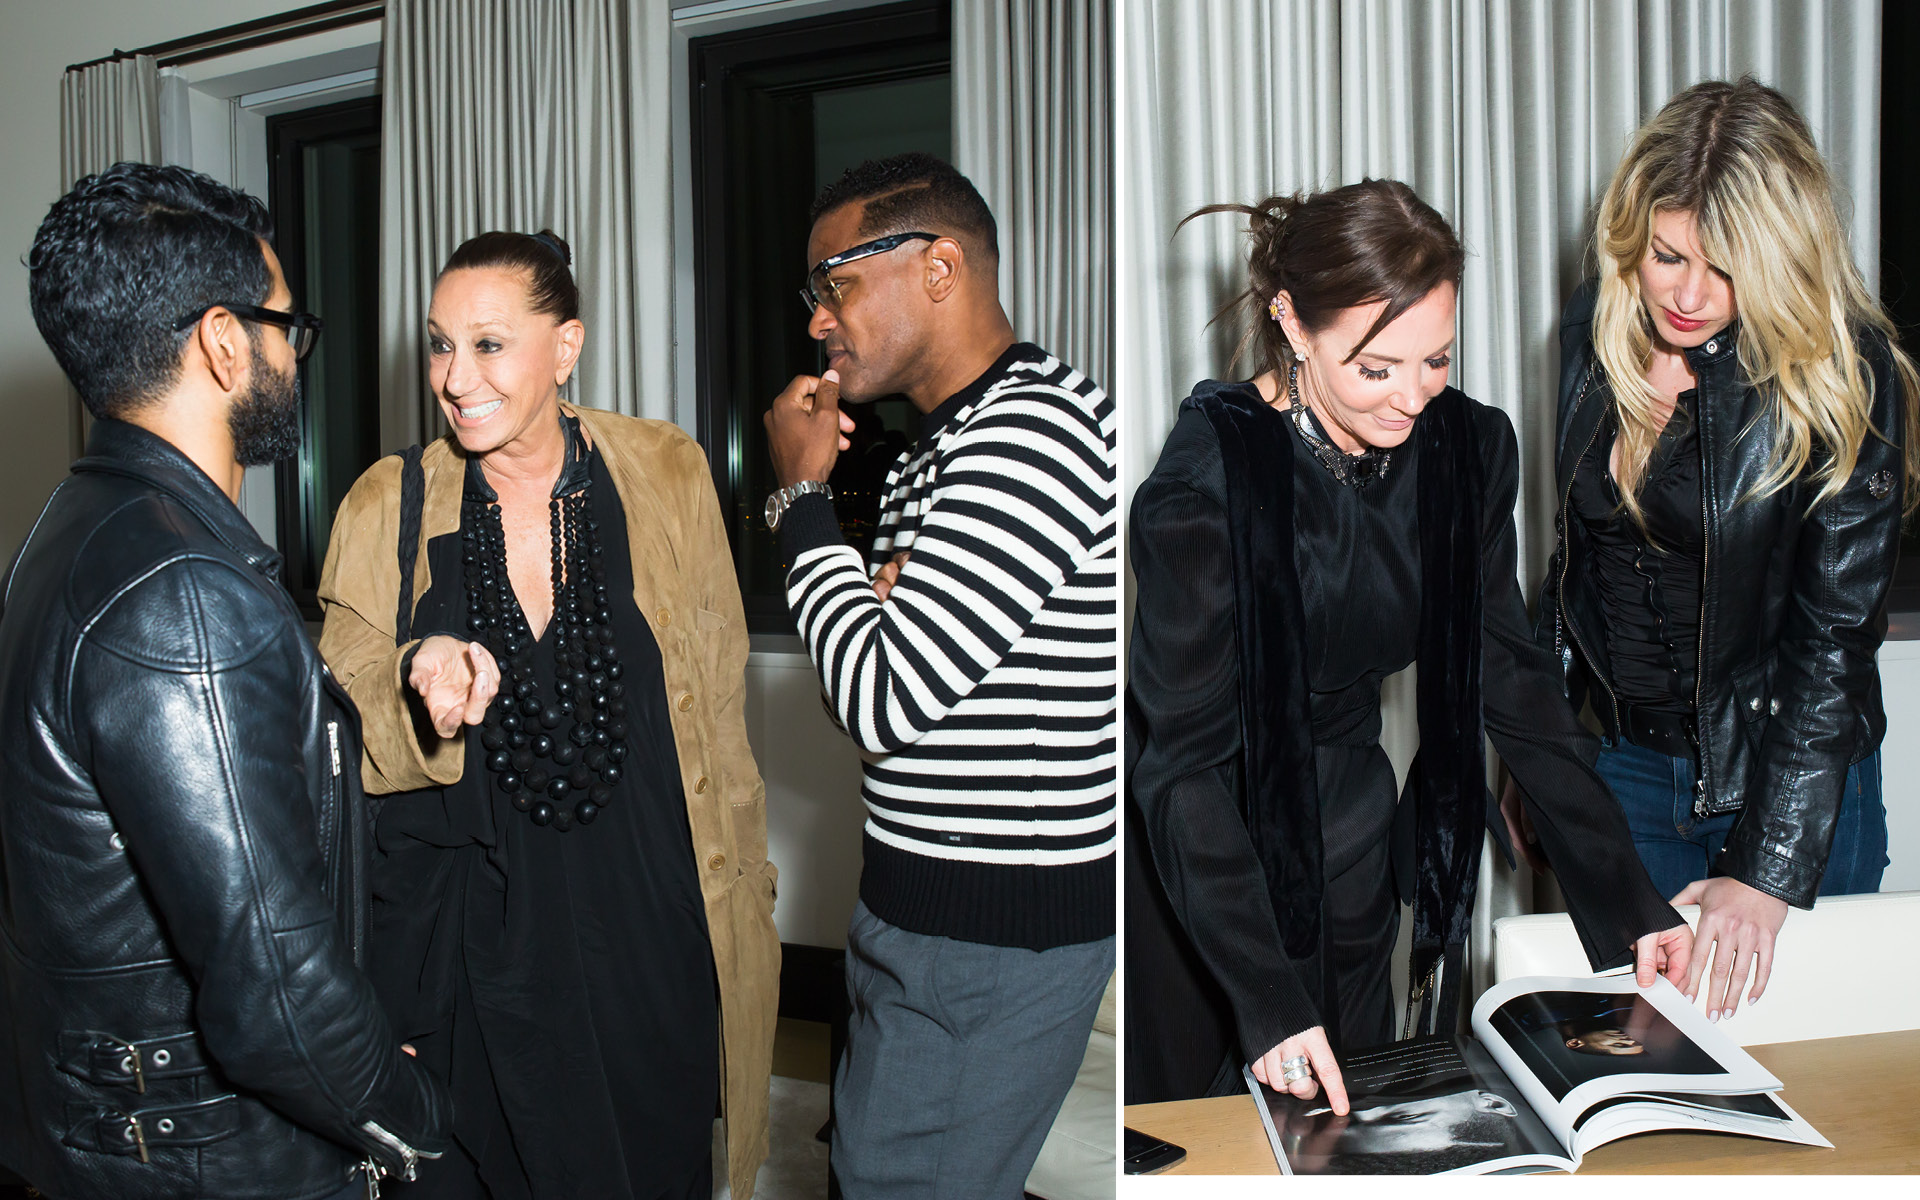 Donna Karan, Maxwell, Camilla Olsson and Meredith Ostrom, at Edition Hotel, celebrating Maxwell birthday and Spirit & Flesh magazine cover story by Mark Seliger